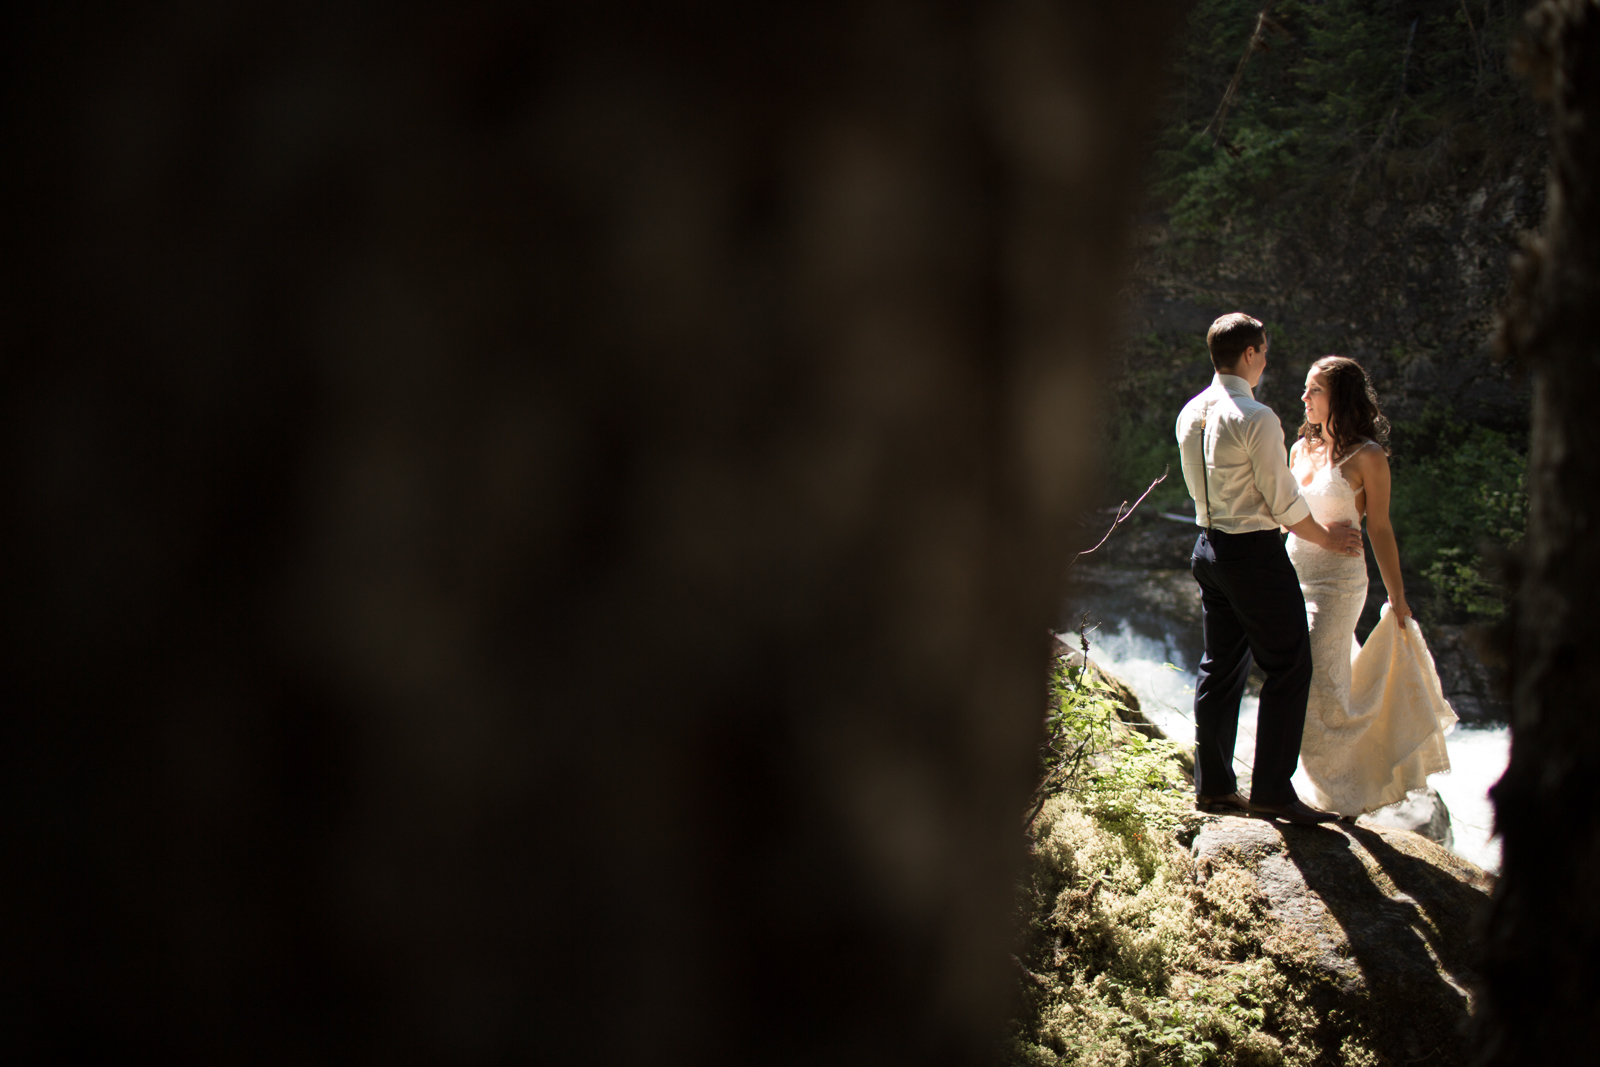 36Andrew_Pavlidis_Photography_Jess_and_Tristan_Revelstoke_Elopement_Calgary_Wedding_Photographer-8171